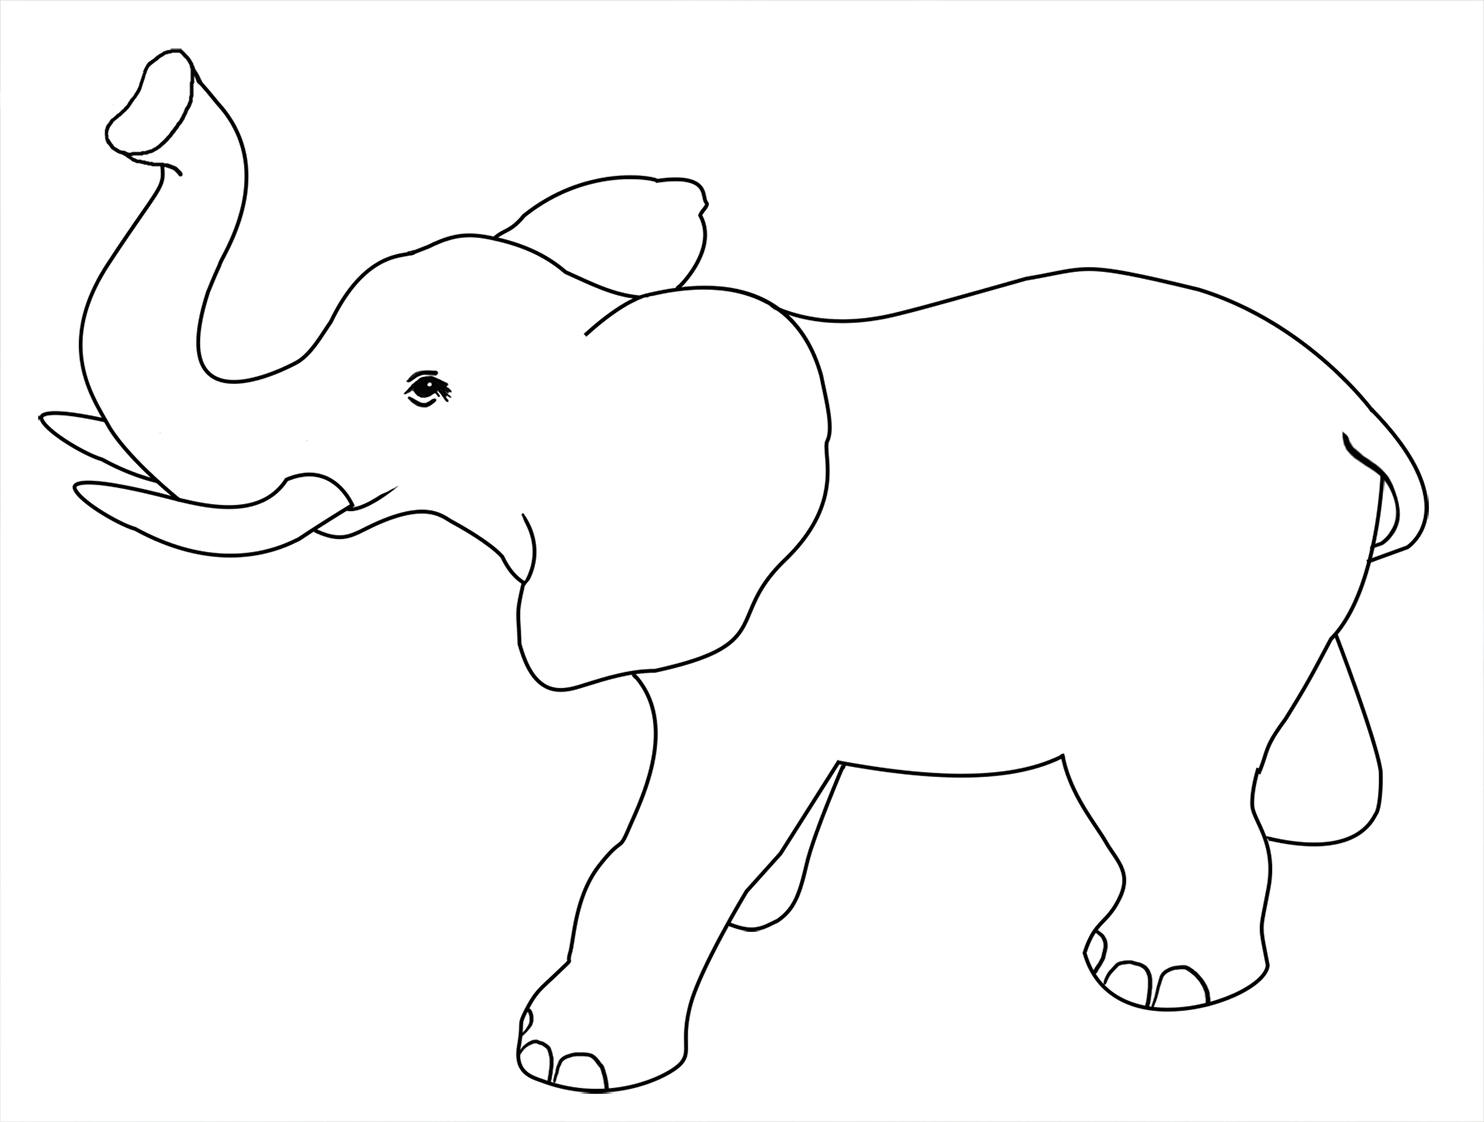 outline of elephant for coloring